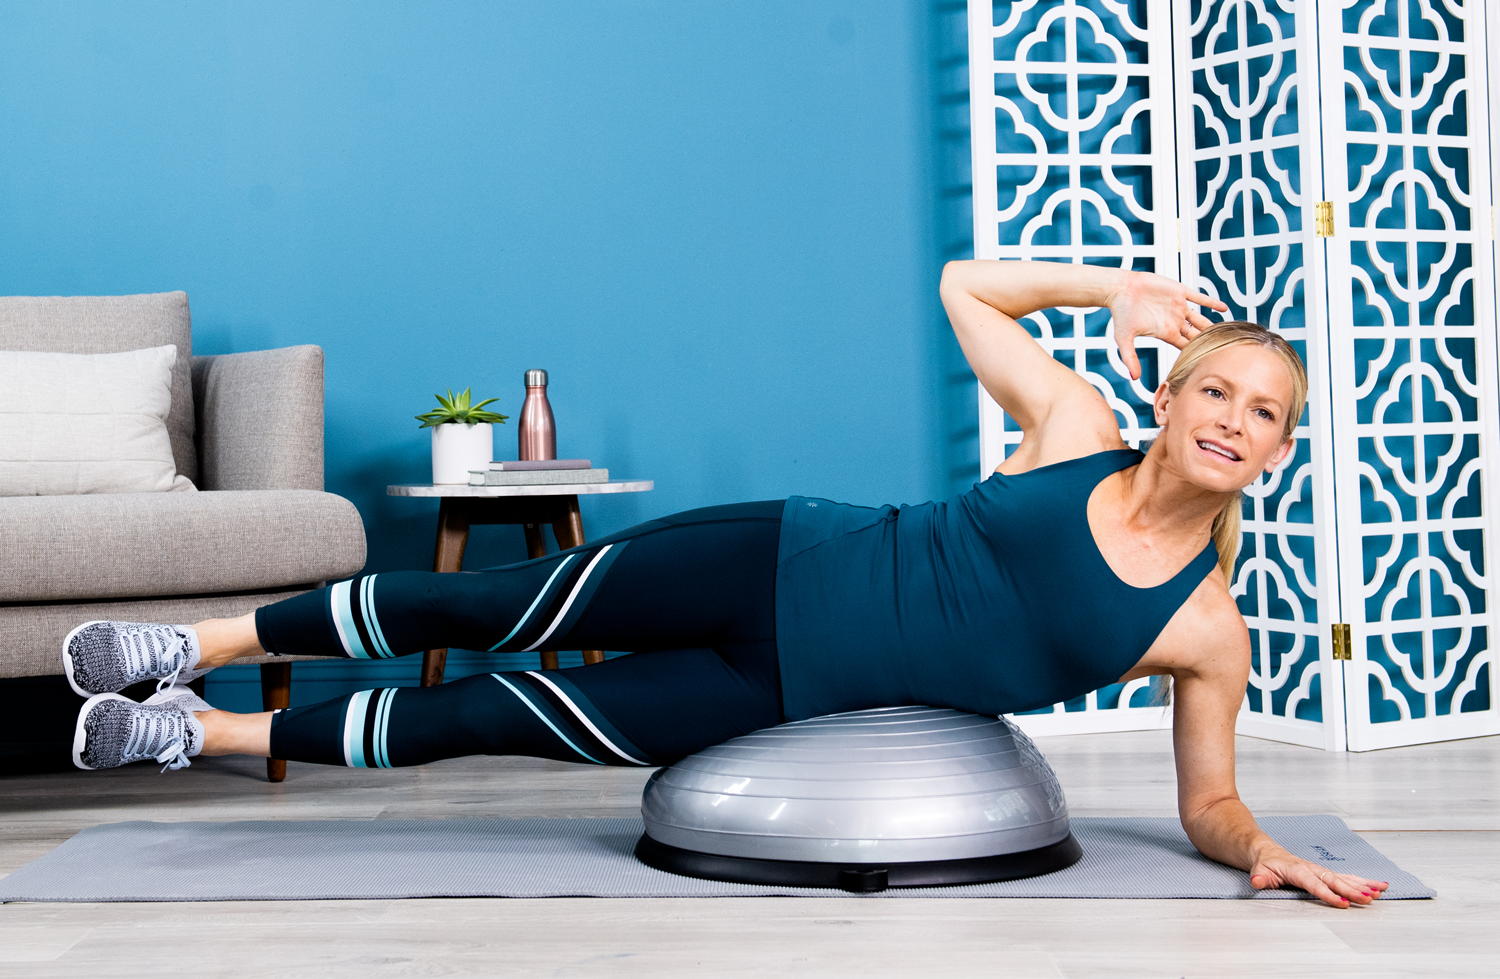 10 Best BOSU Ball Exercises That'll Whip Your Entire Body Into Shape